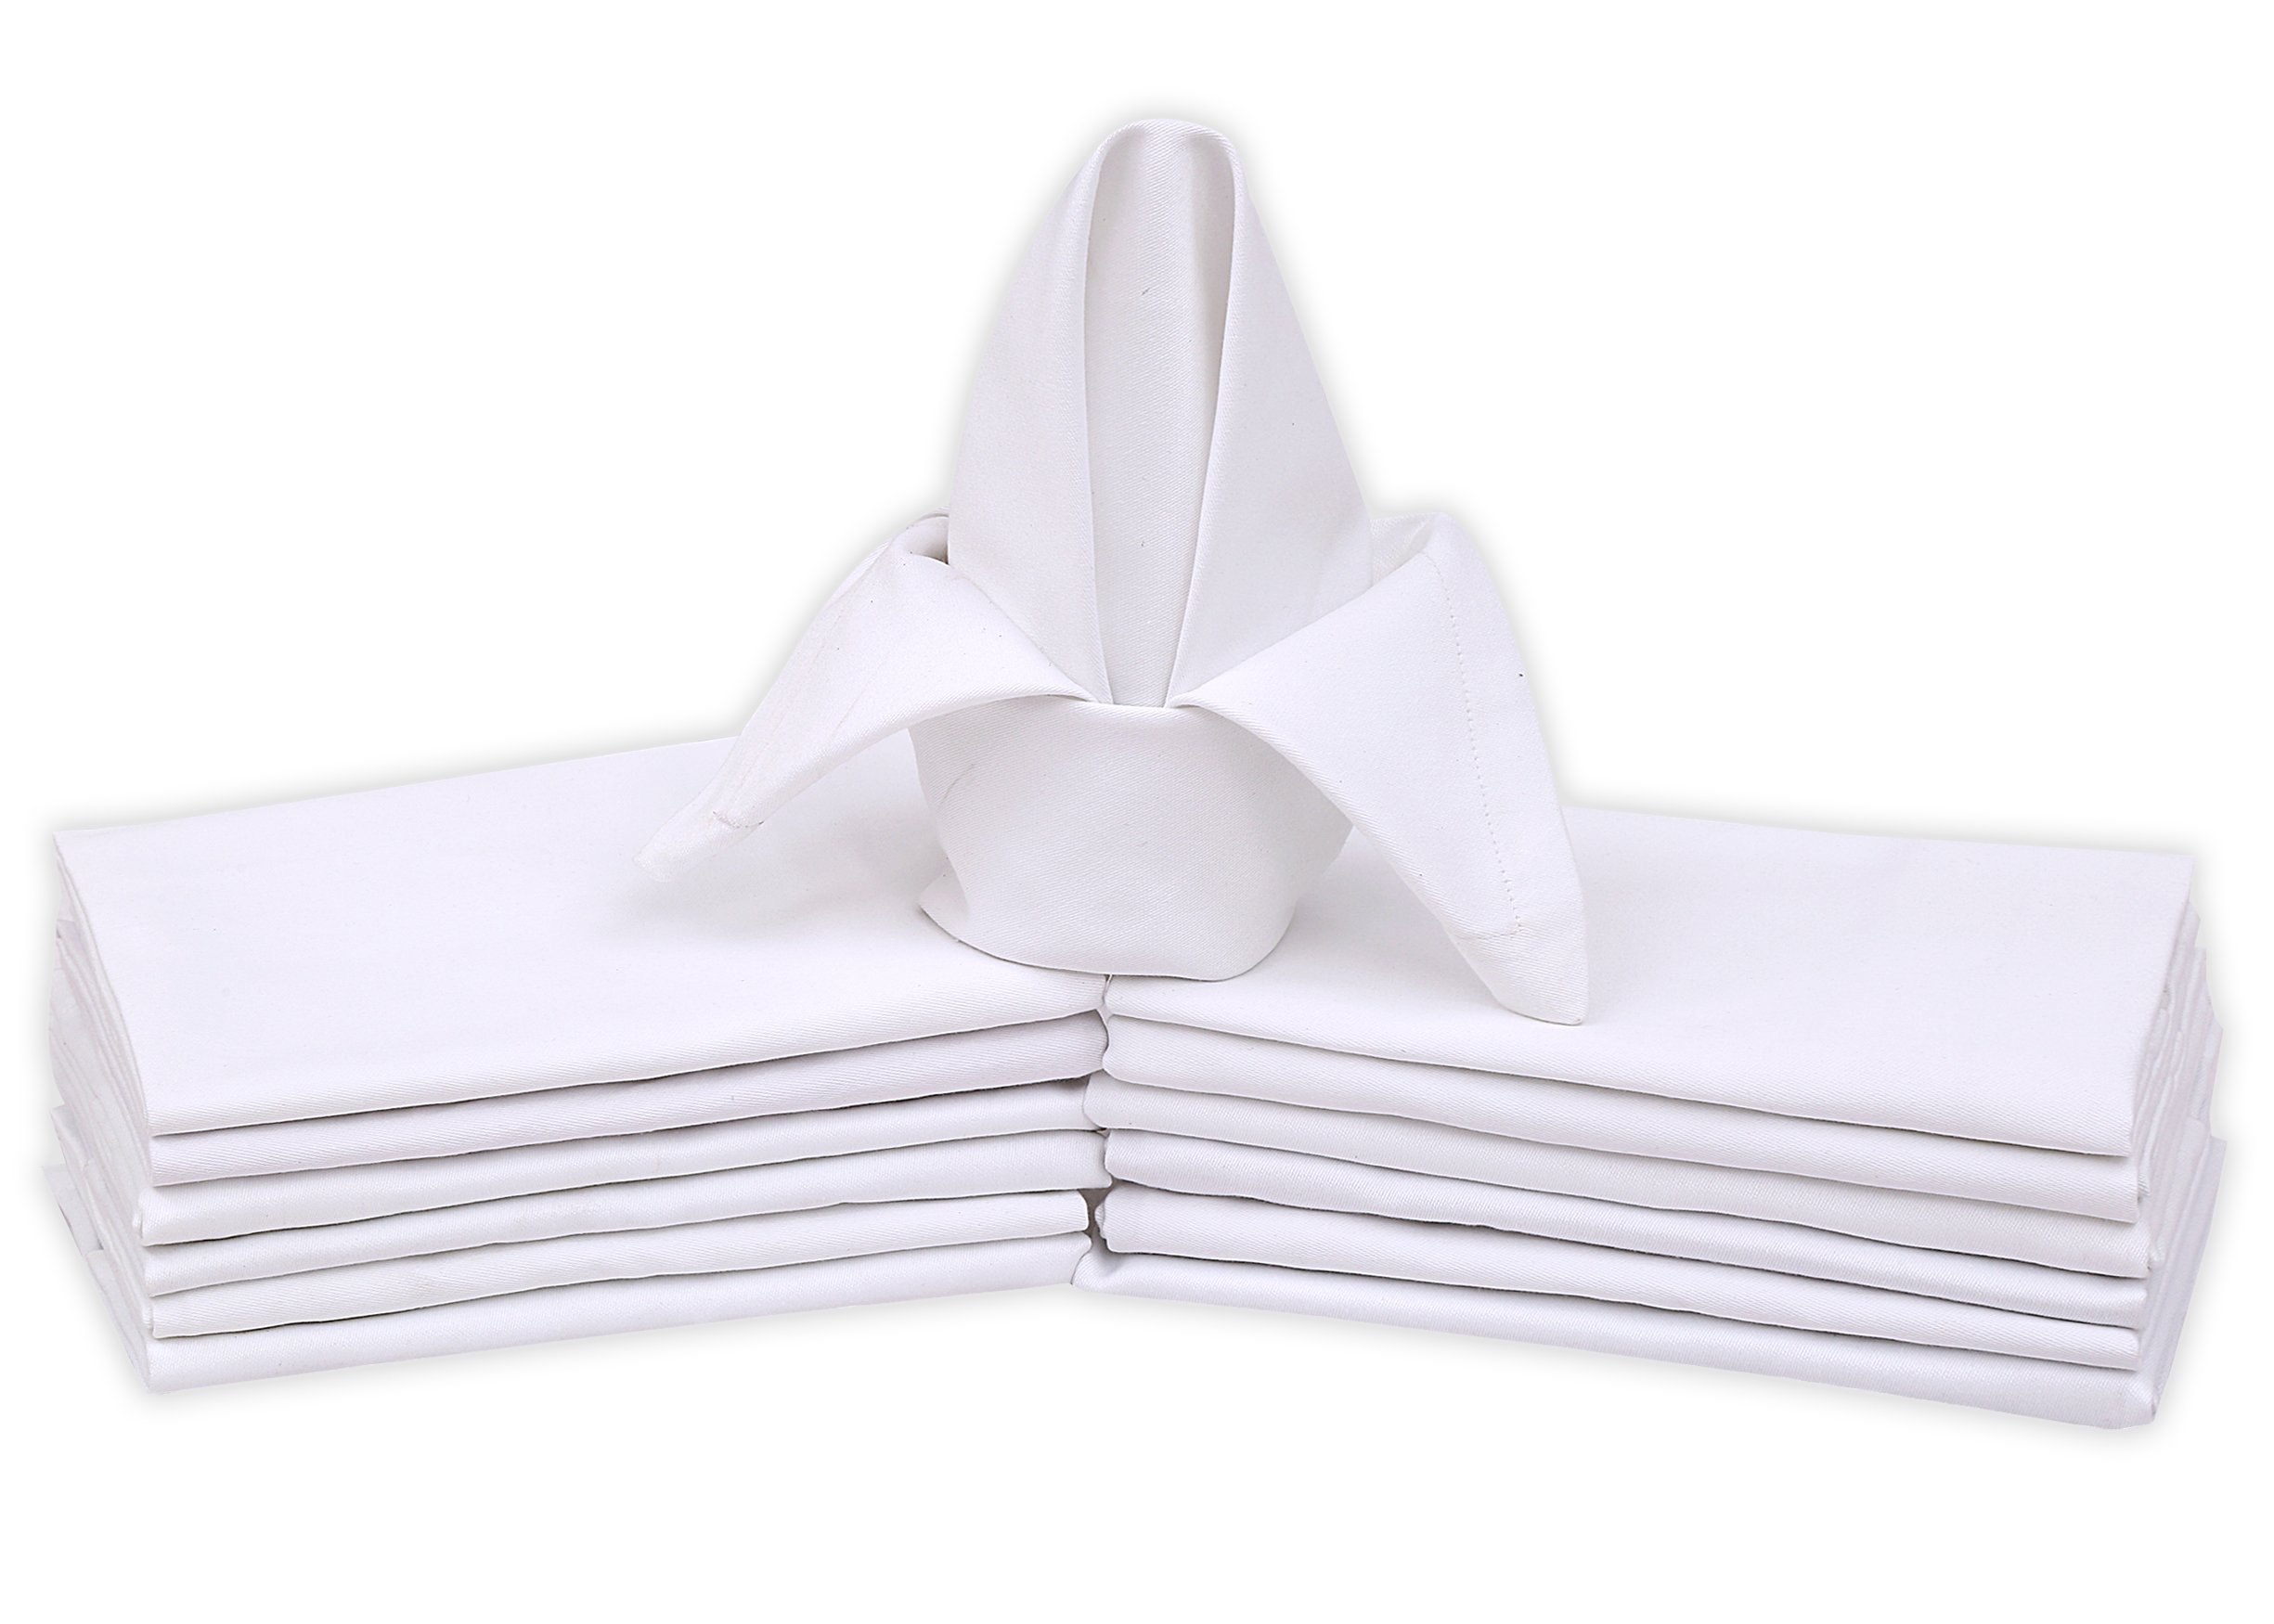 Ruvanti Cotton Dinner Napkins 12 Pack, Cloth Napkins Soft and Comfortable - Deluxe Hotel Quality Linen Napkins - Perfect Table Napkins for Family Dinners, Weddings and Home Use. (White)